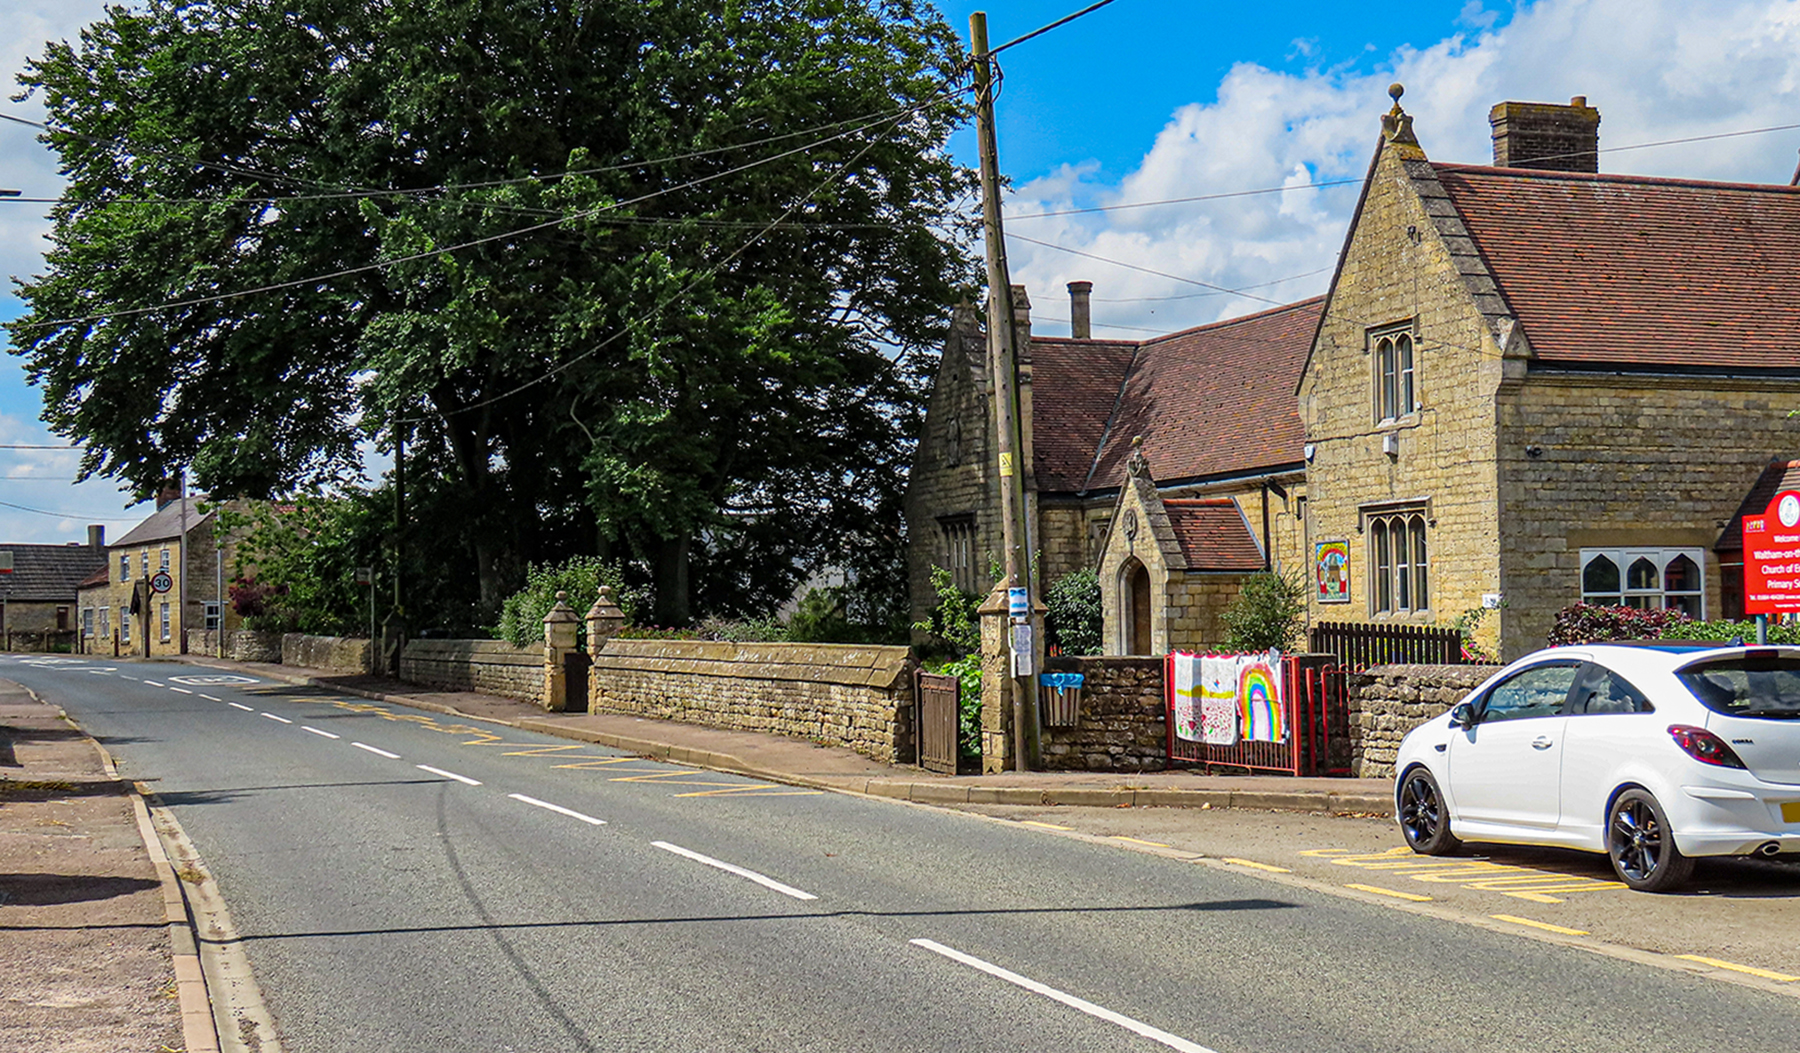 Waltham on the Wolds - Primary School - Now